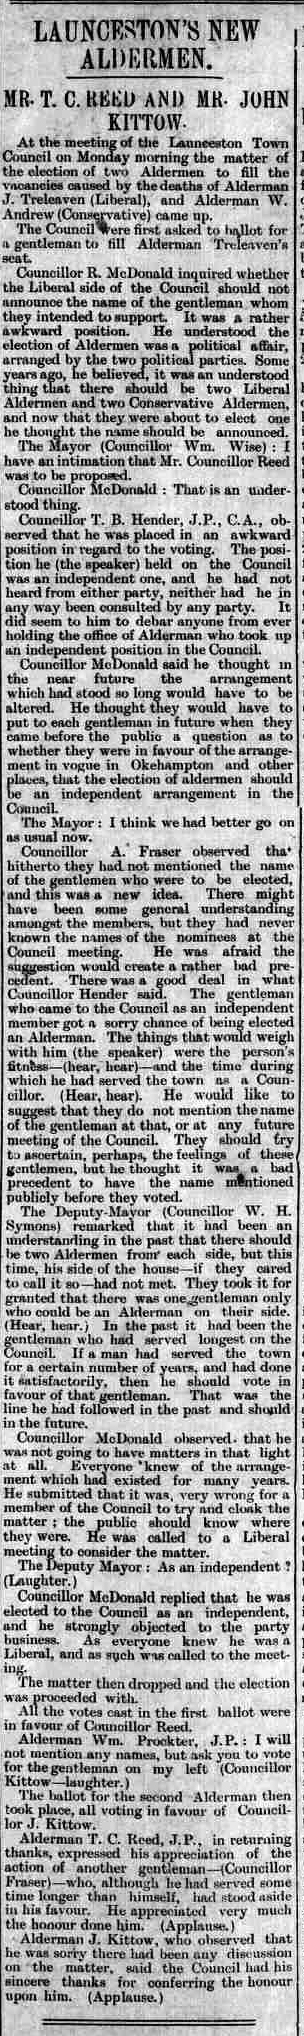 Launceston's new aldermen 25 February 1911